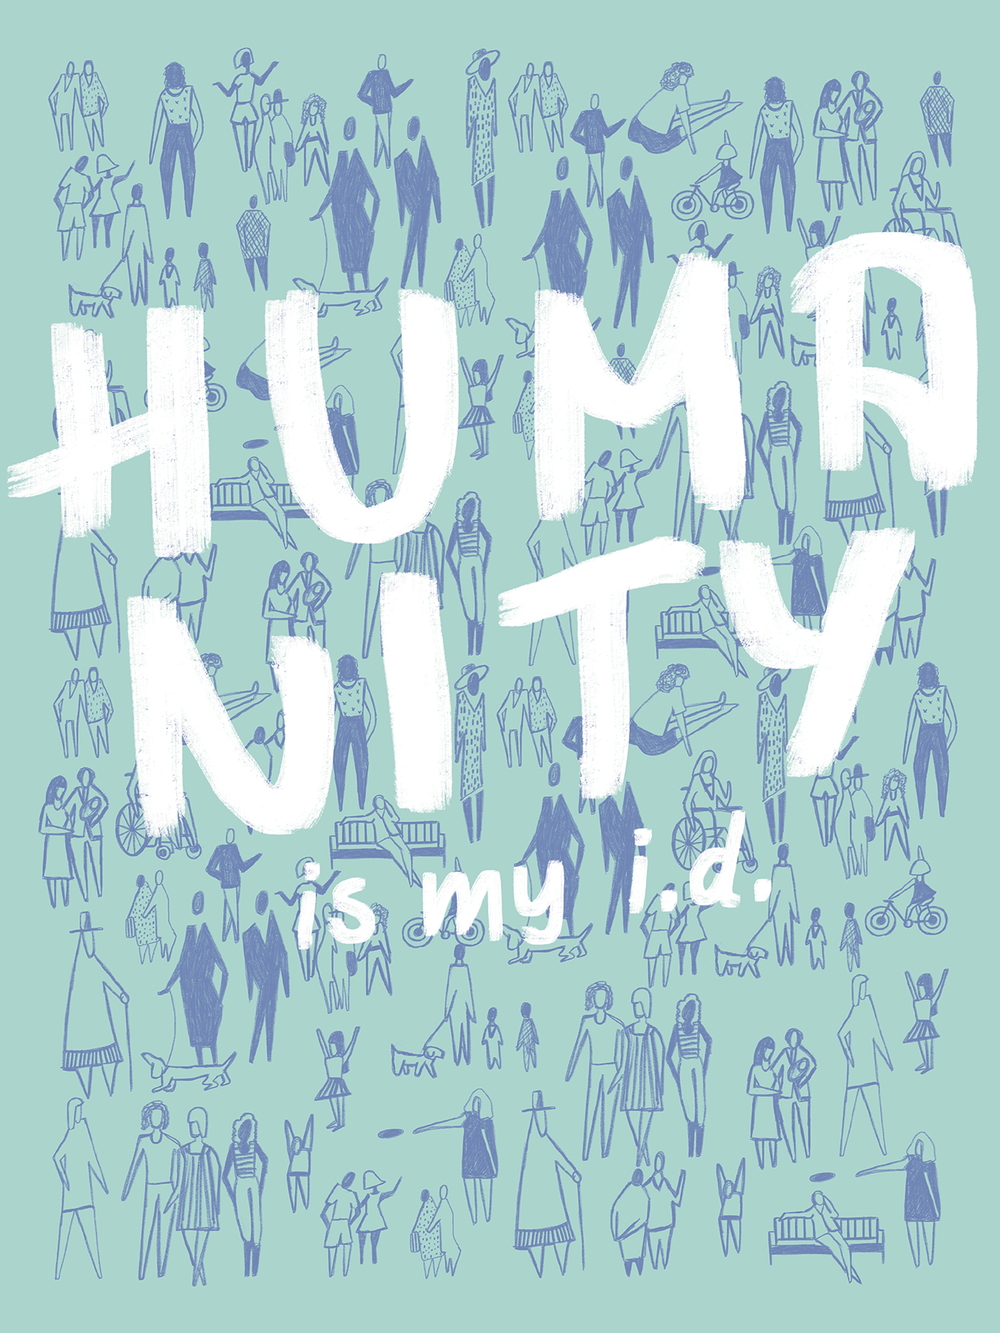 HUMANITY by Kelsey Scofield